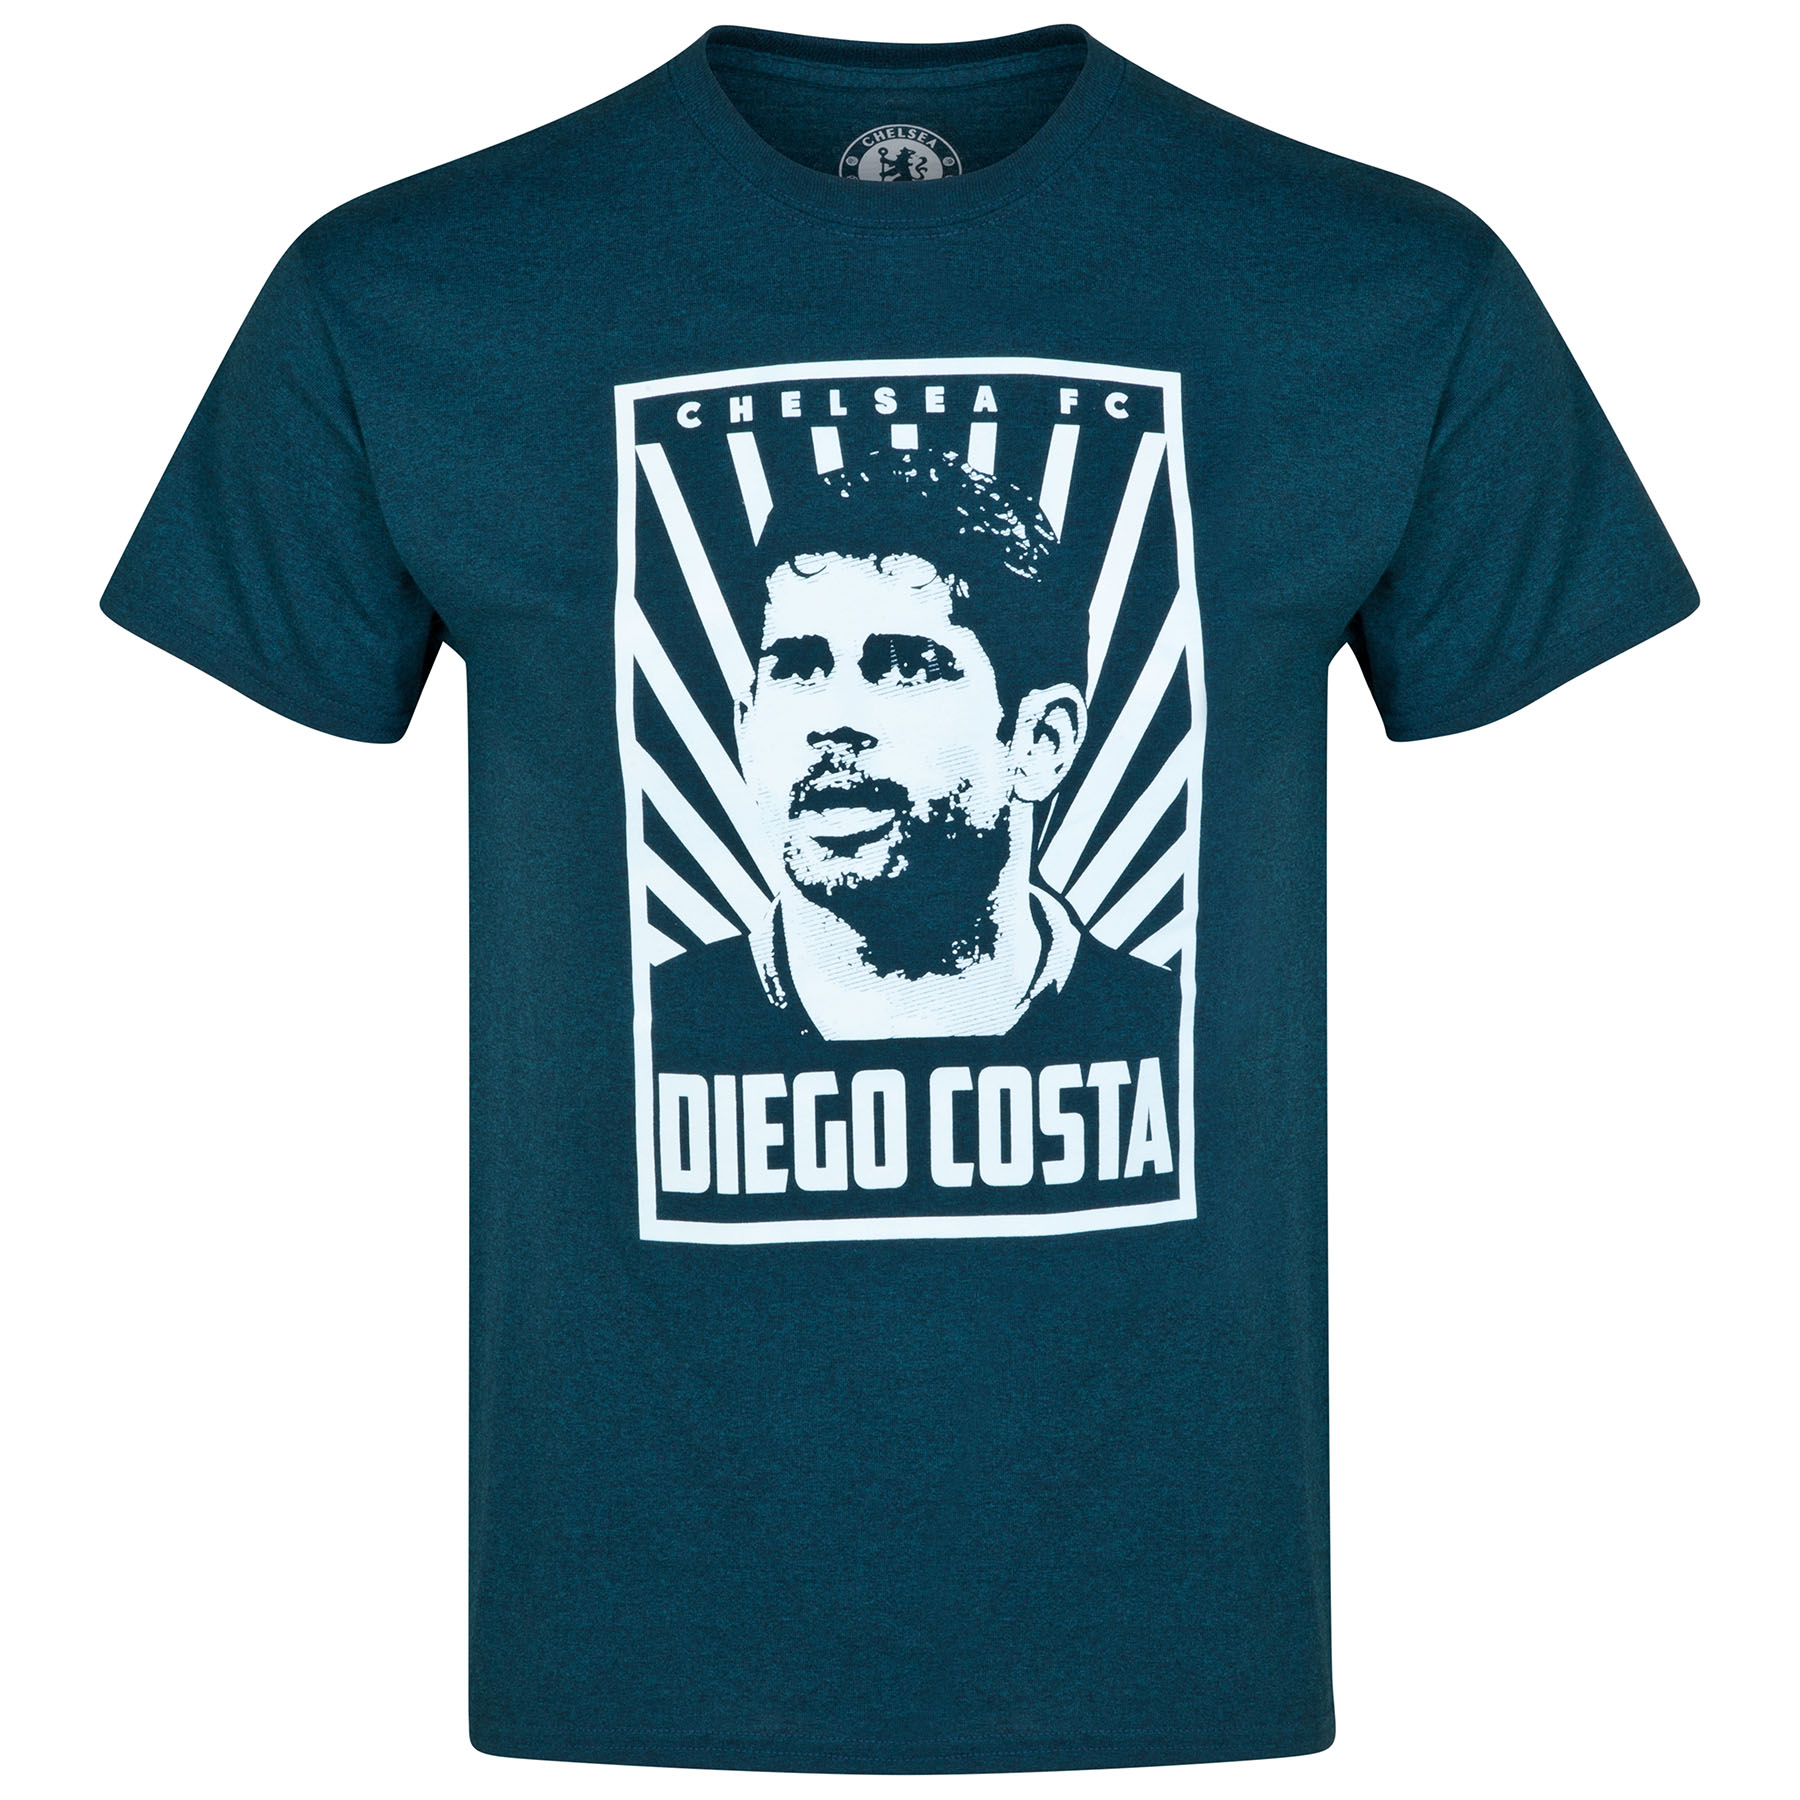 Chelsea Diego Costa T-Shirt - Heather Navy - Mens